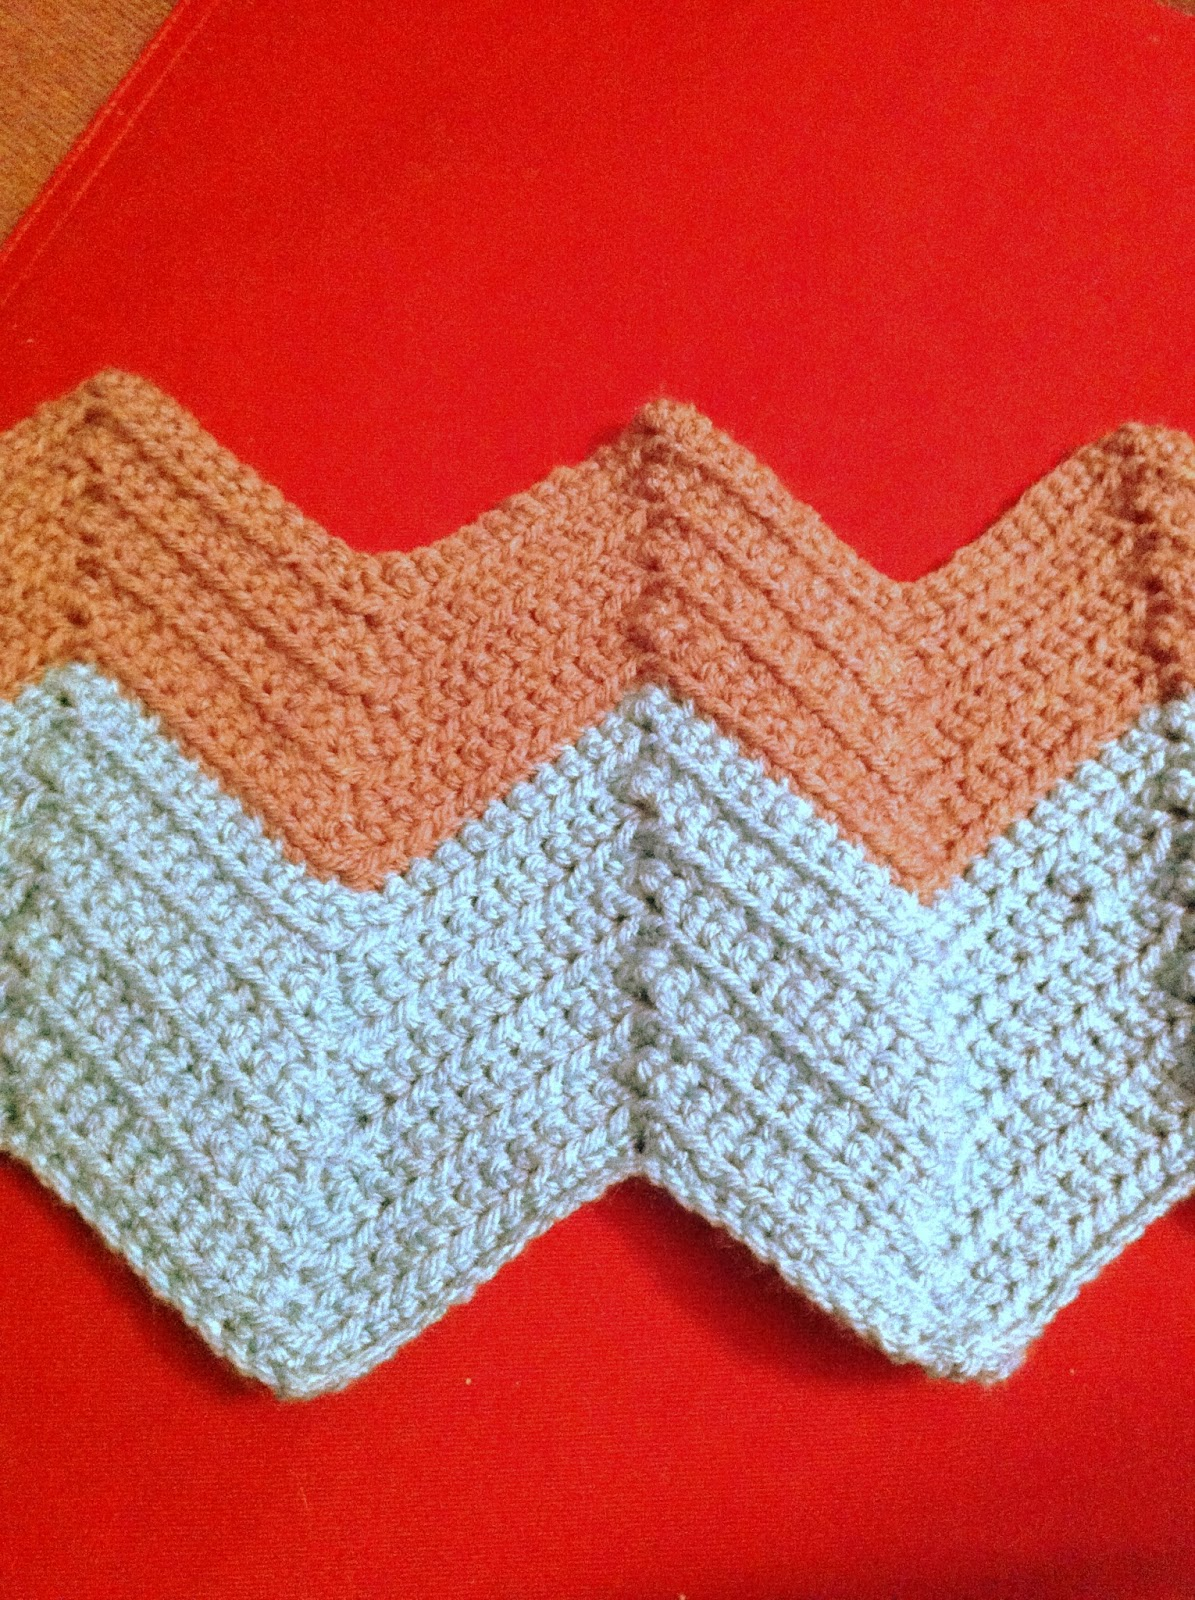 Crochet Stitches Chevron : ... your desired length! Then you will have a beautiful chevron blanket